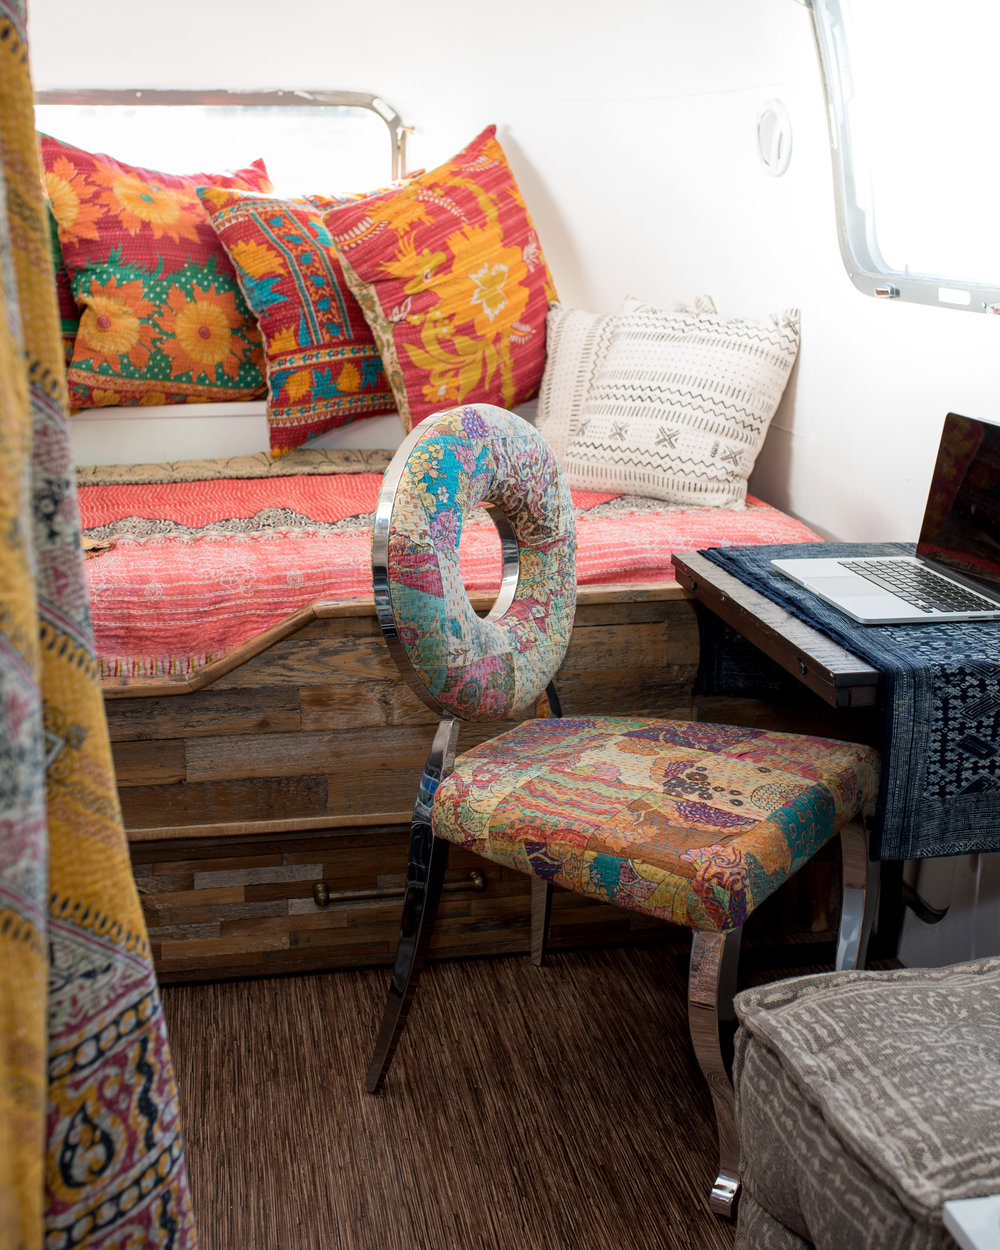 """We switched it up slightly in this picture to feature the coolest looking """"donut chair"""" ever. We use vintage indian fabric for the upholstery to give it that special bohemian funky pop of color."""